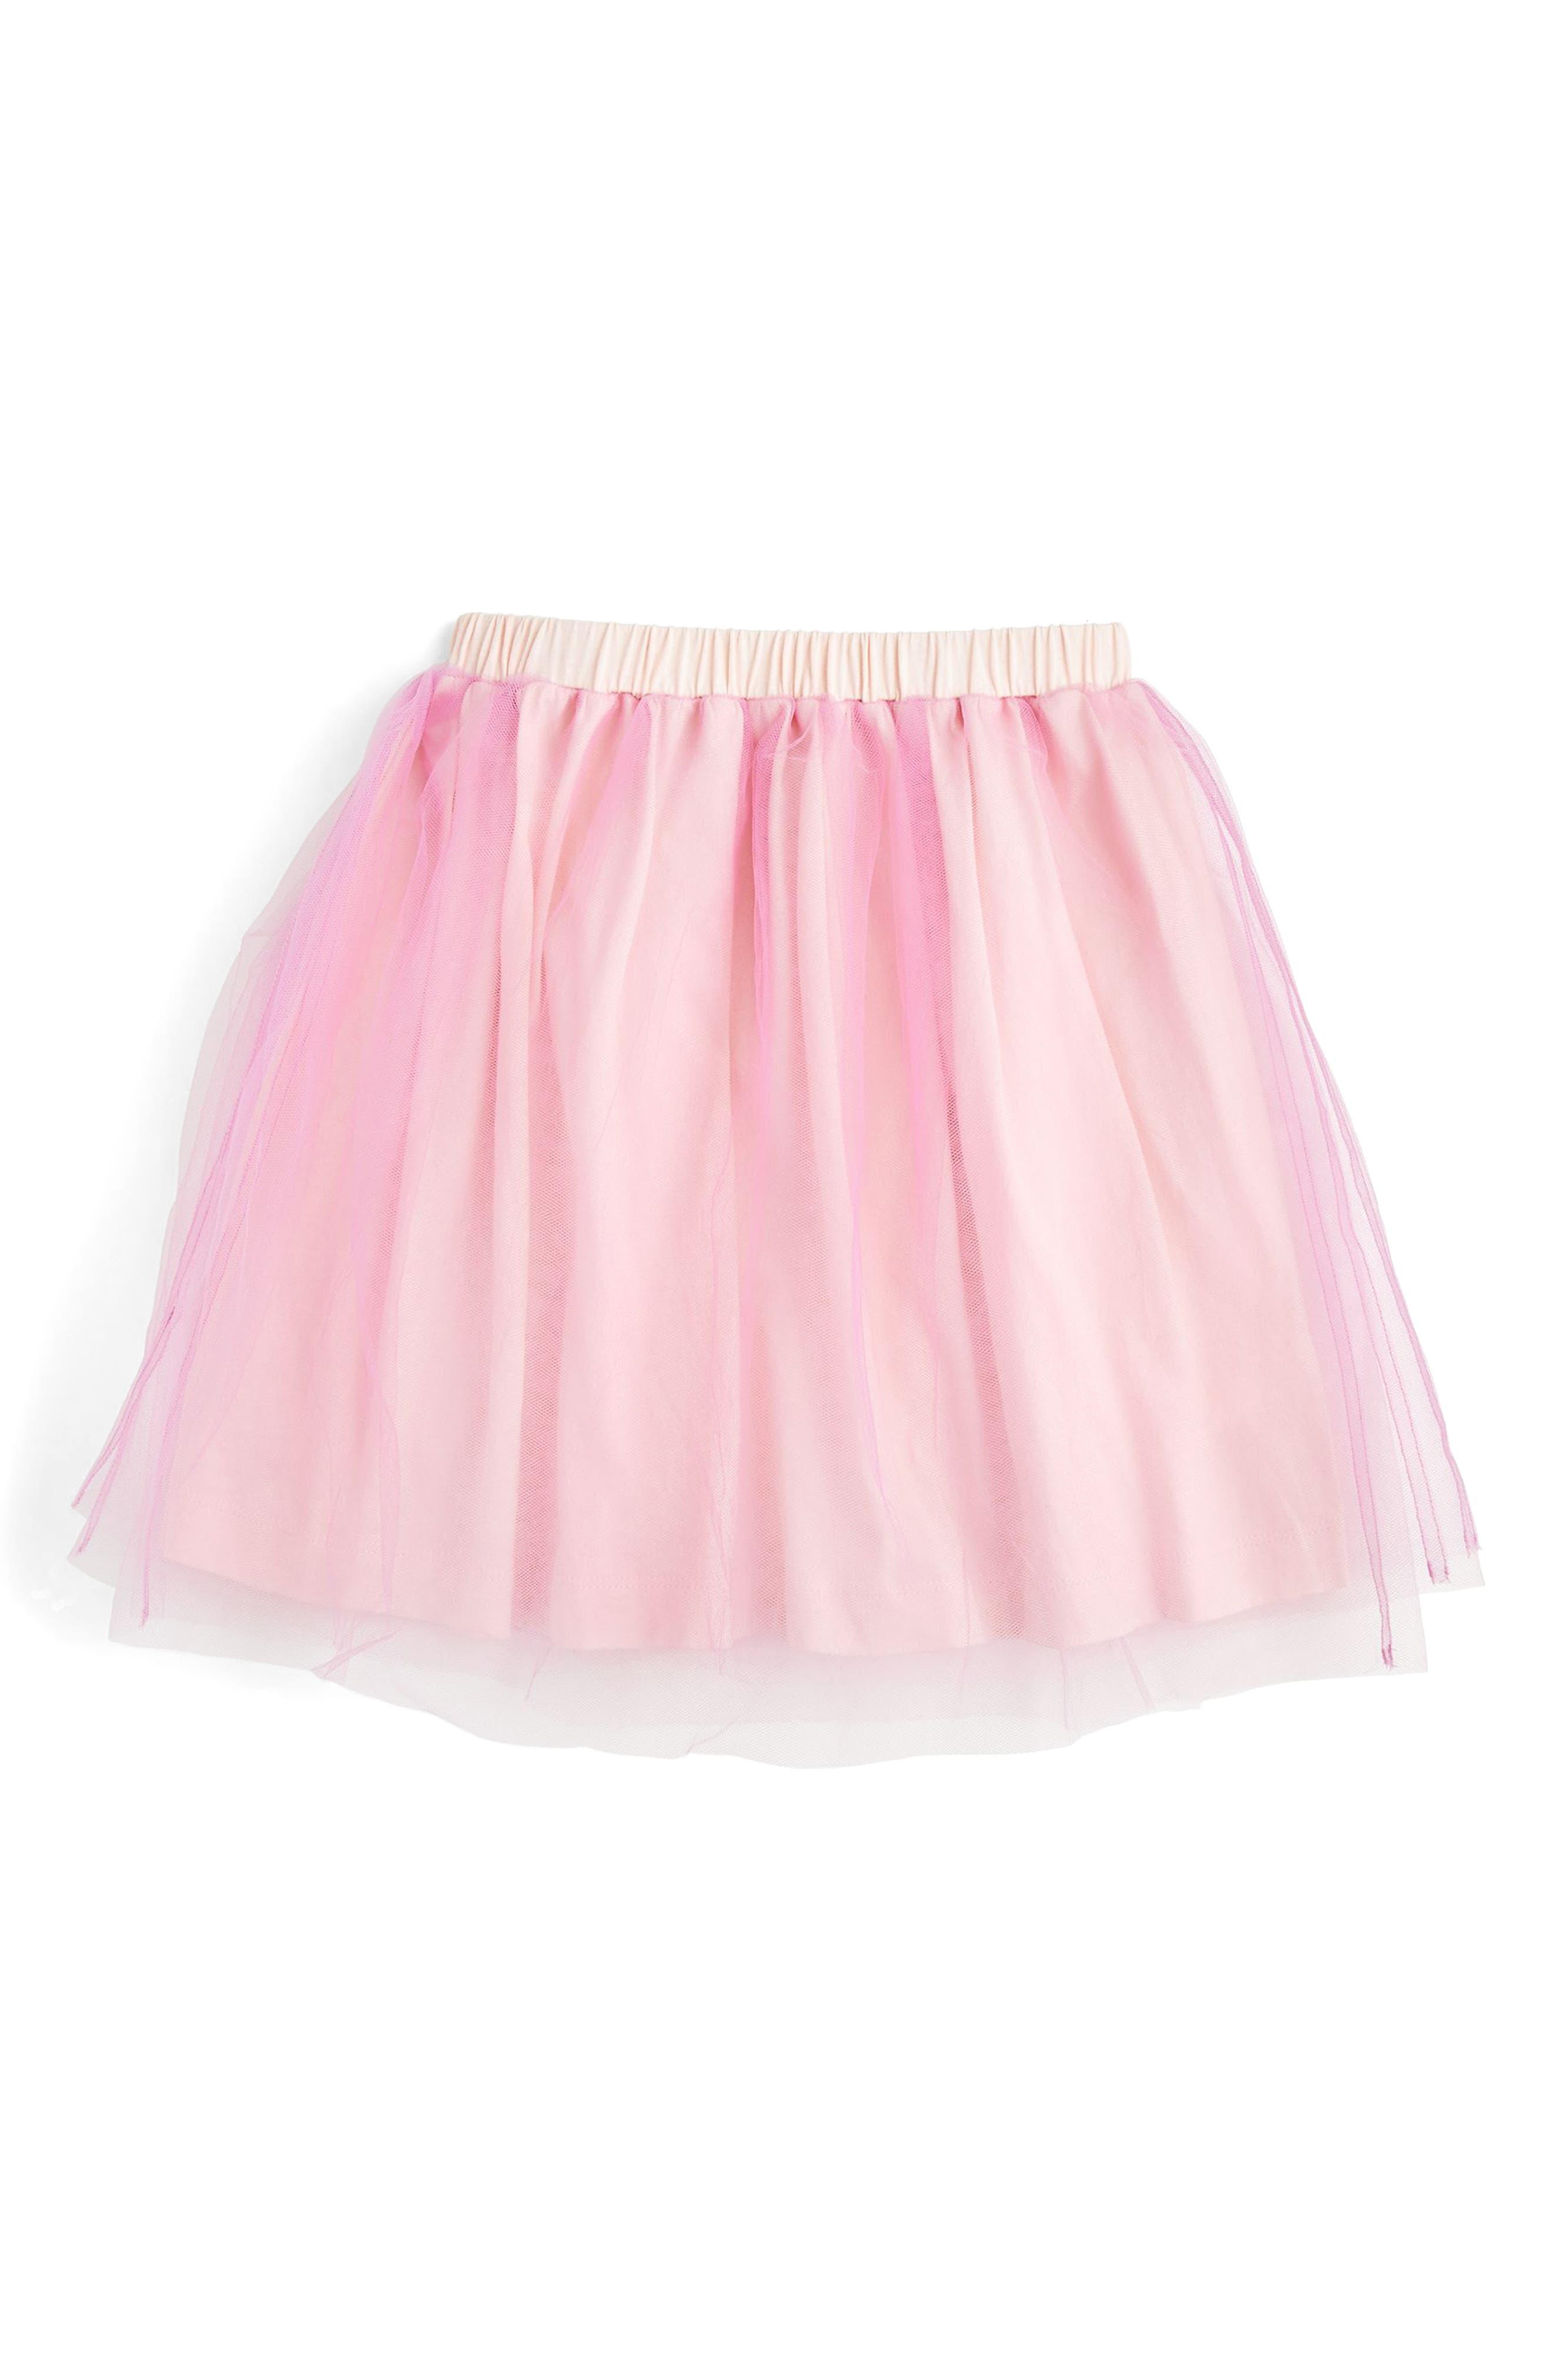 Tulle Skirt,                         Main,                         color, Orchid Pink